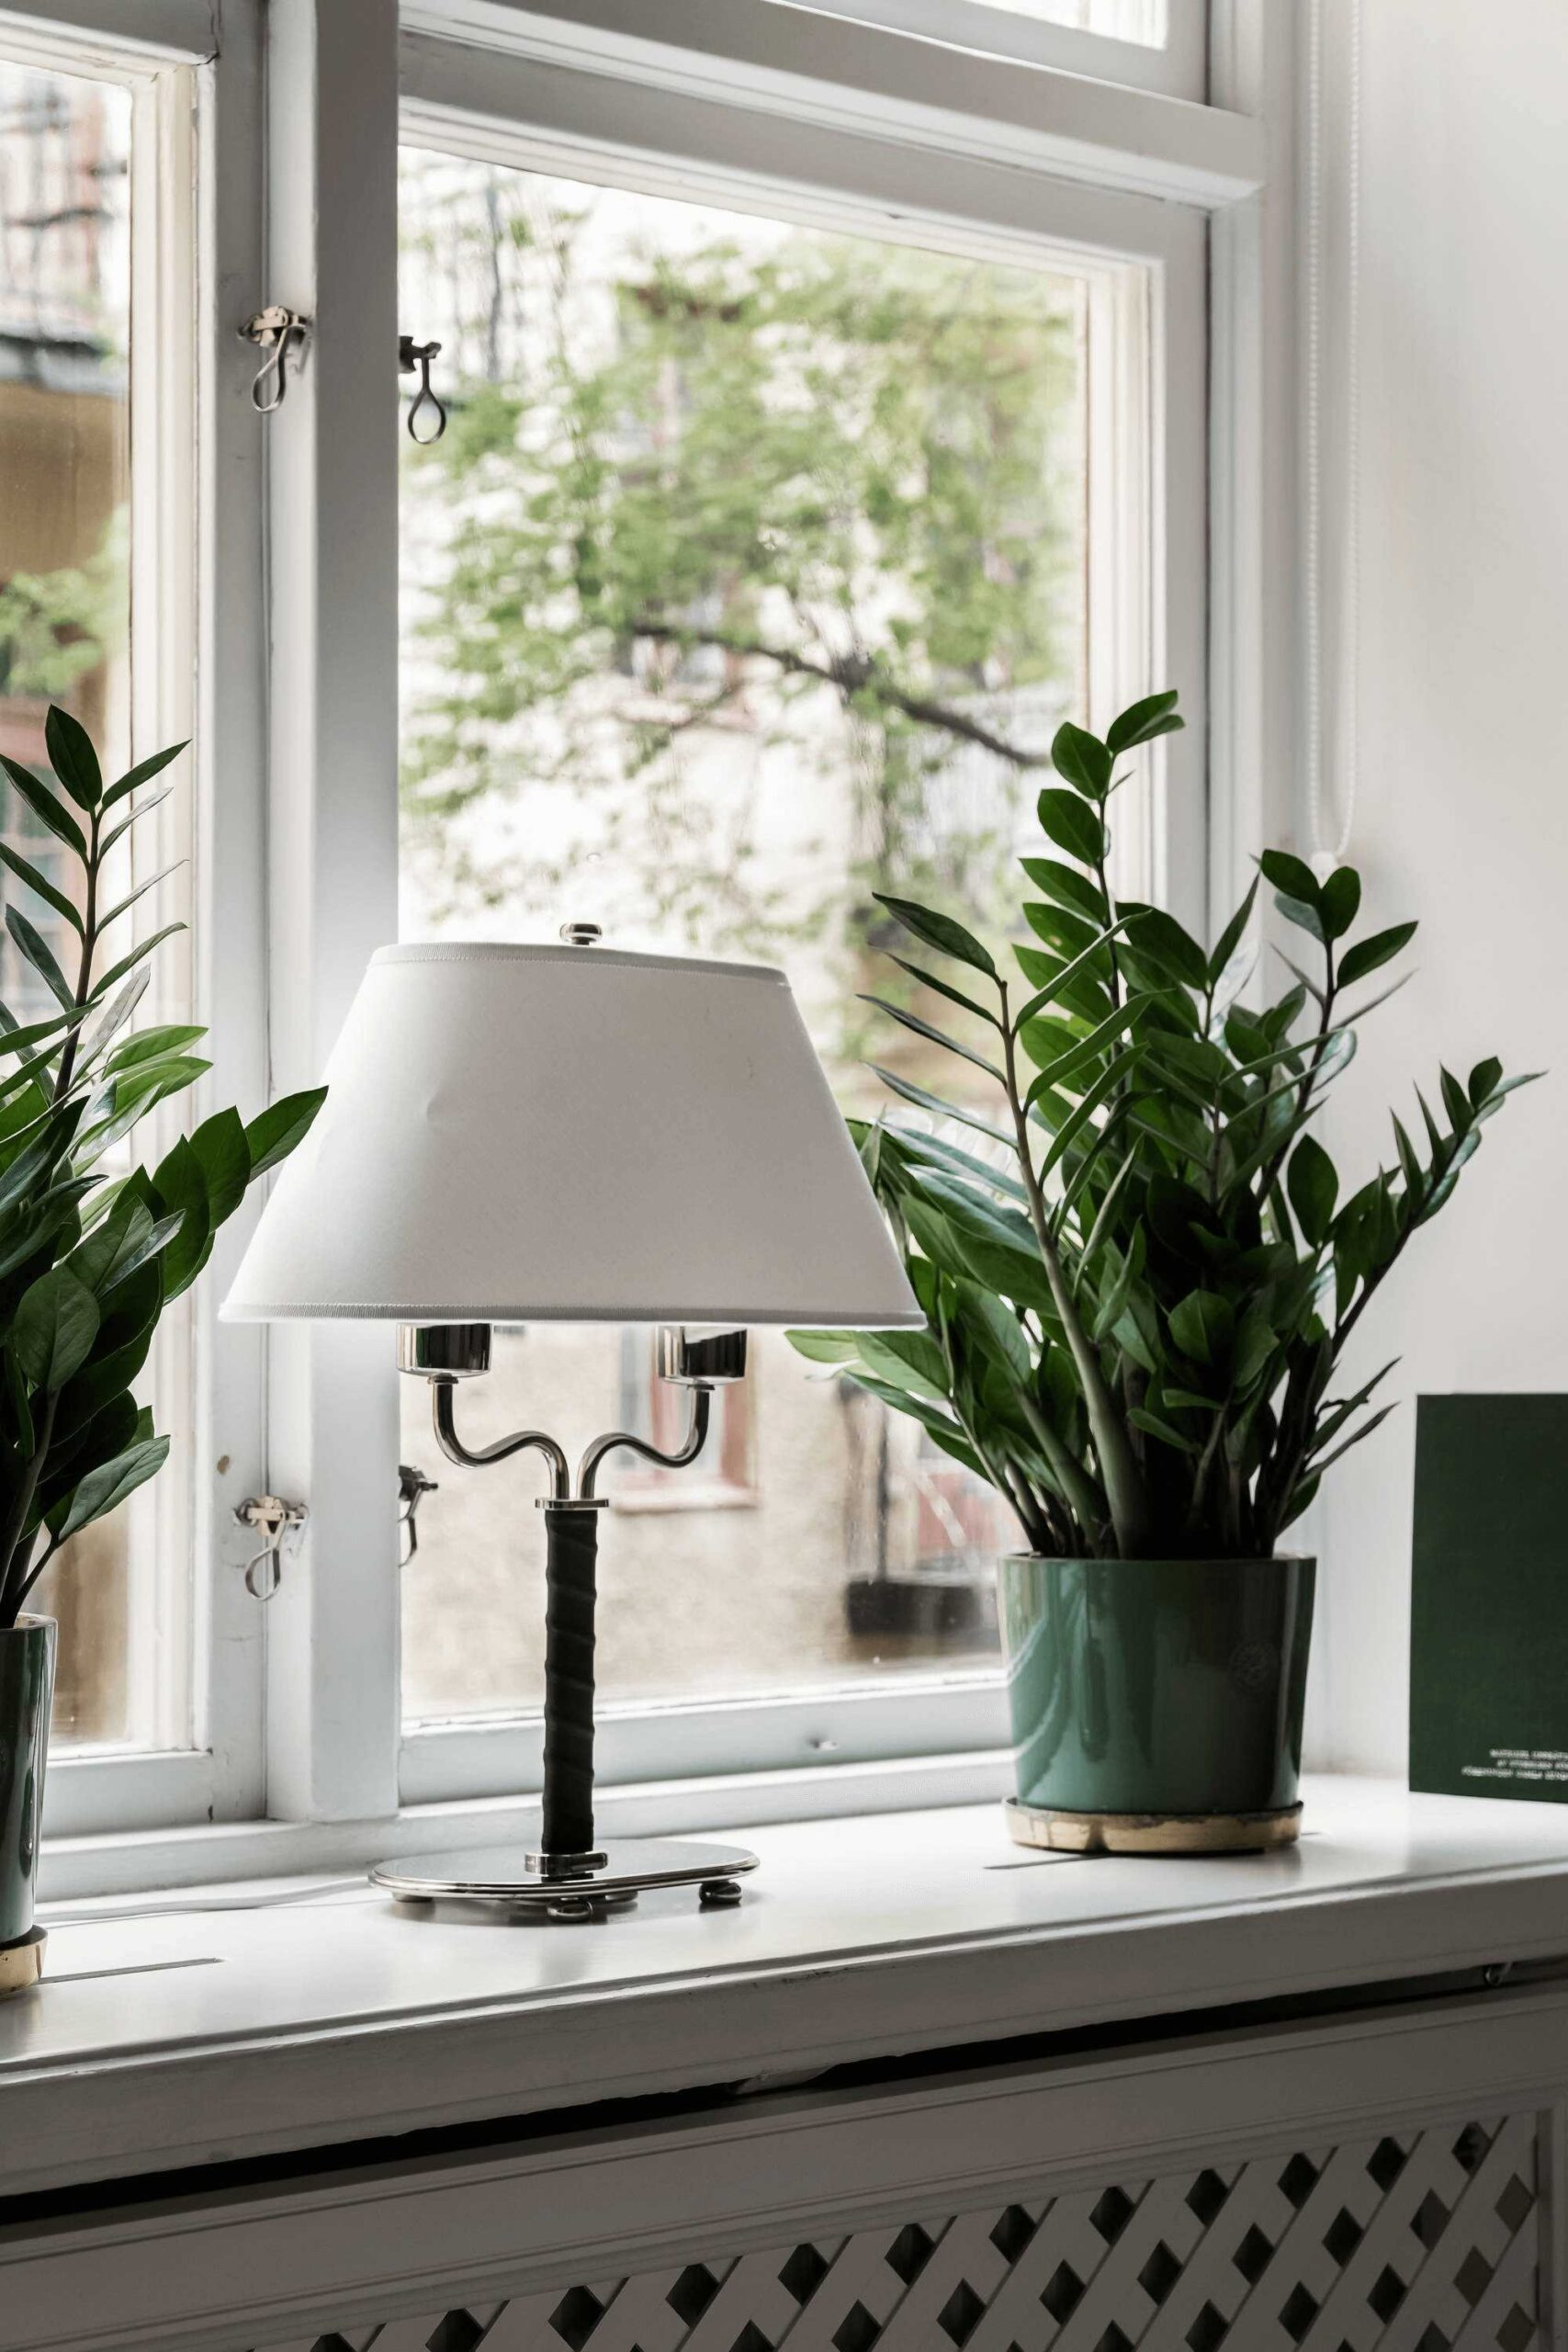 this-is-art-inspired-Scandinavian-style-apartment-with-a-iconic-scandinavian-stlye-lamp